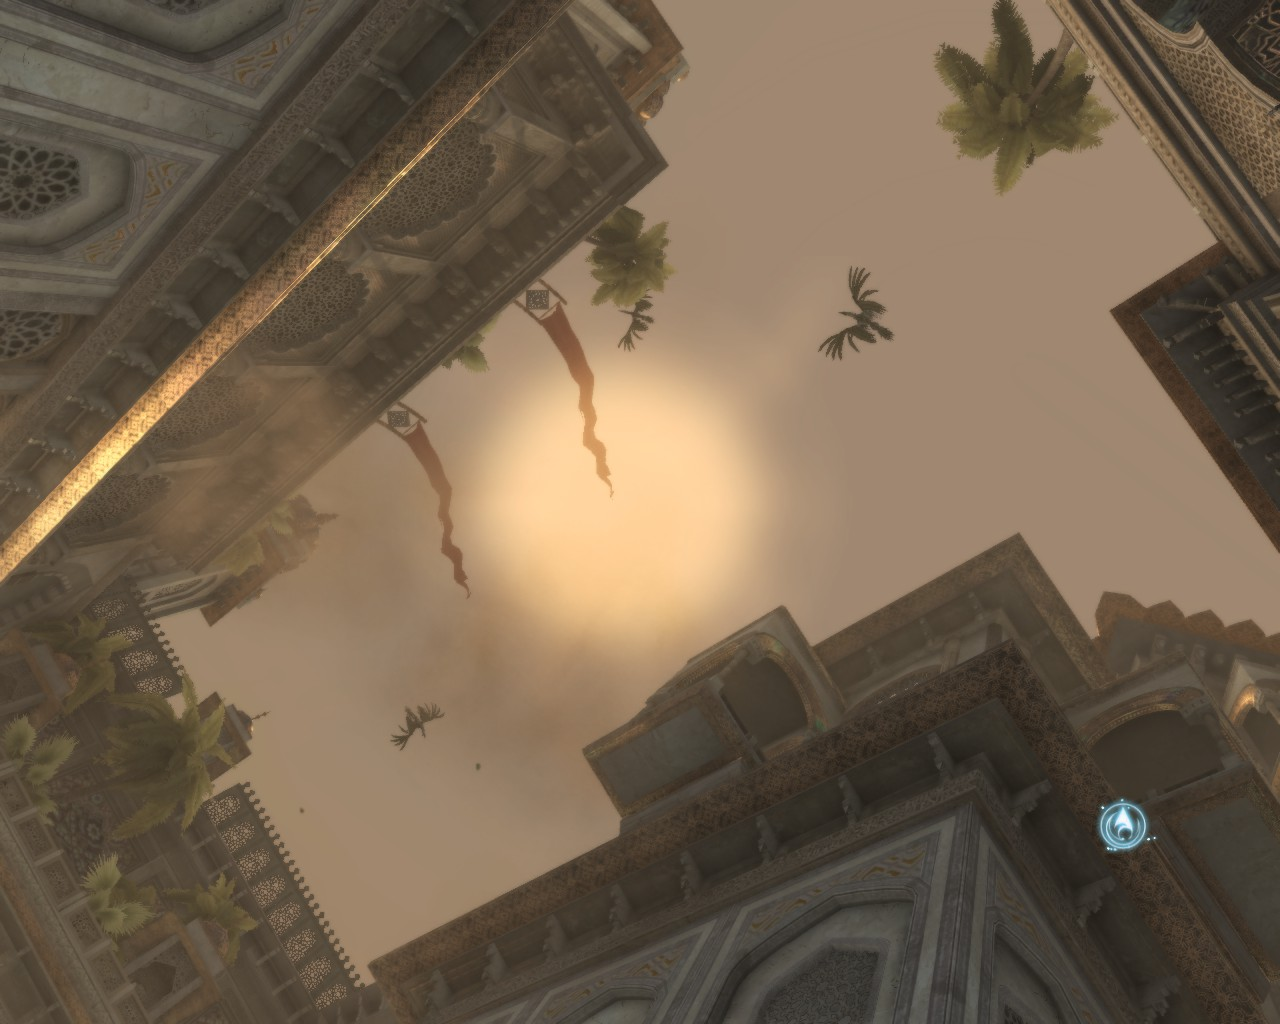 Prince of Persia 2014-06-03 22-57-34-68.jpg - Prince of Persia: The Forgotten Sands